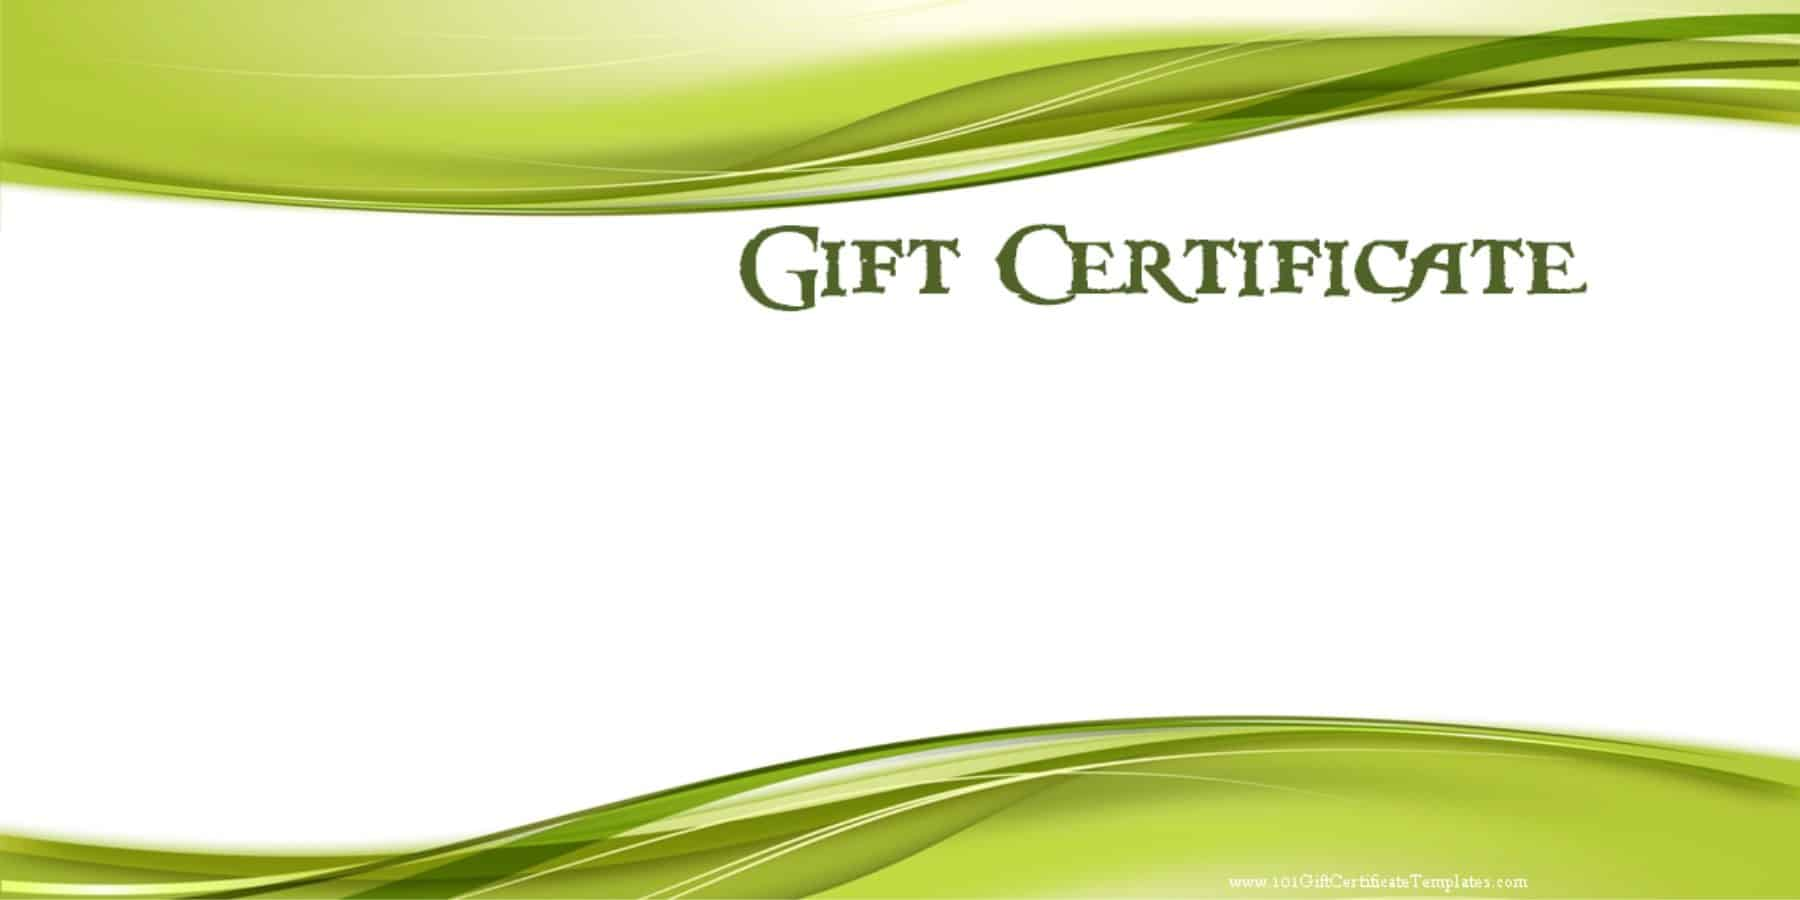 Printable gift certificate templates blank gift certificate which can be customized xflitez Images